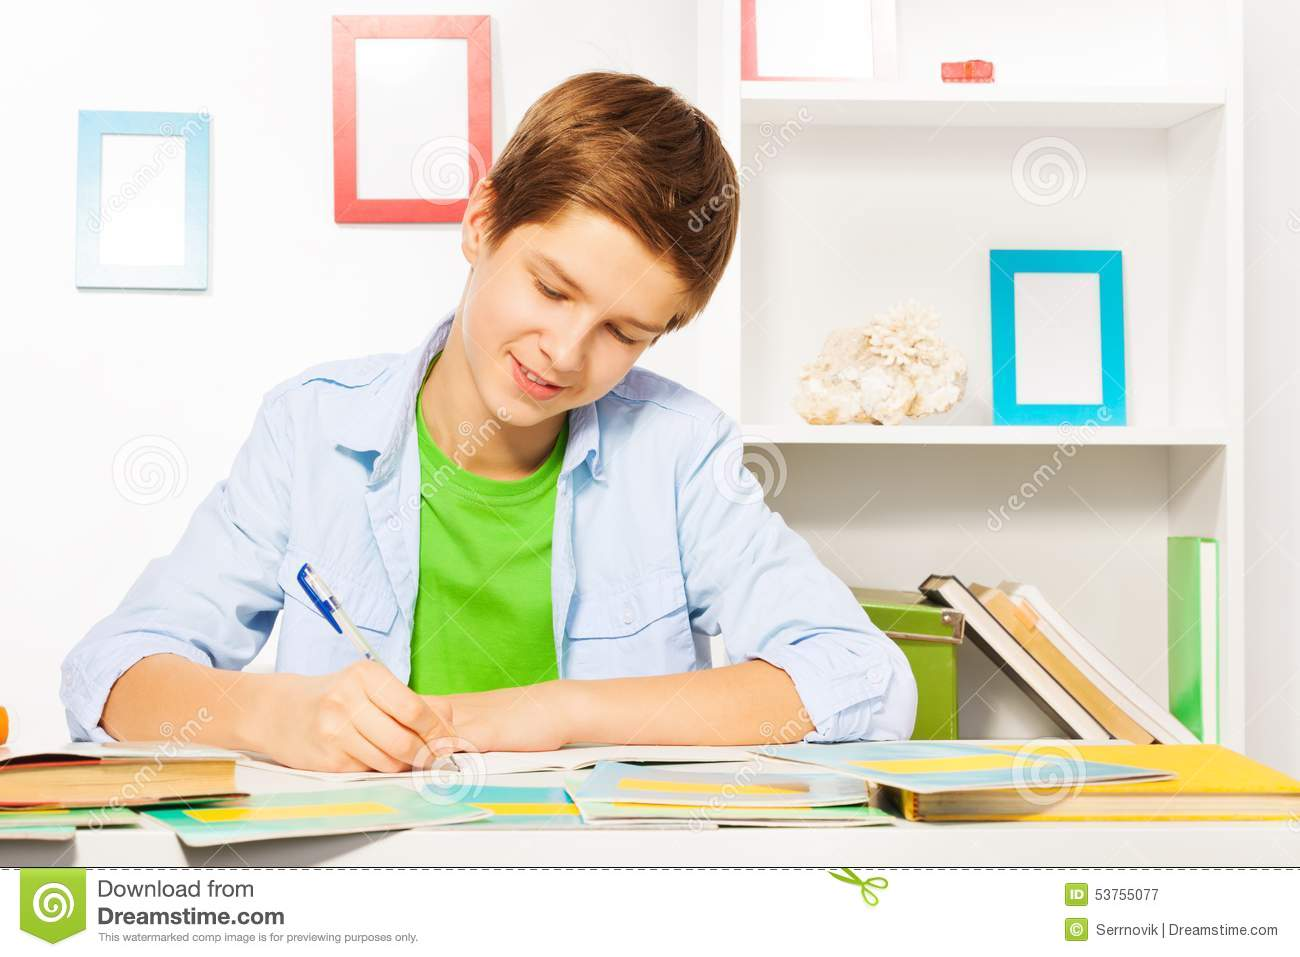 Different types of essay and their examples image 9